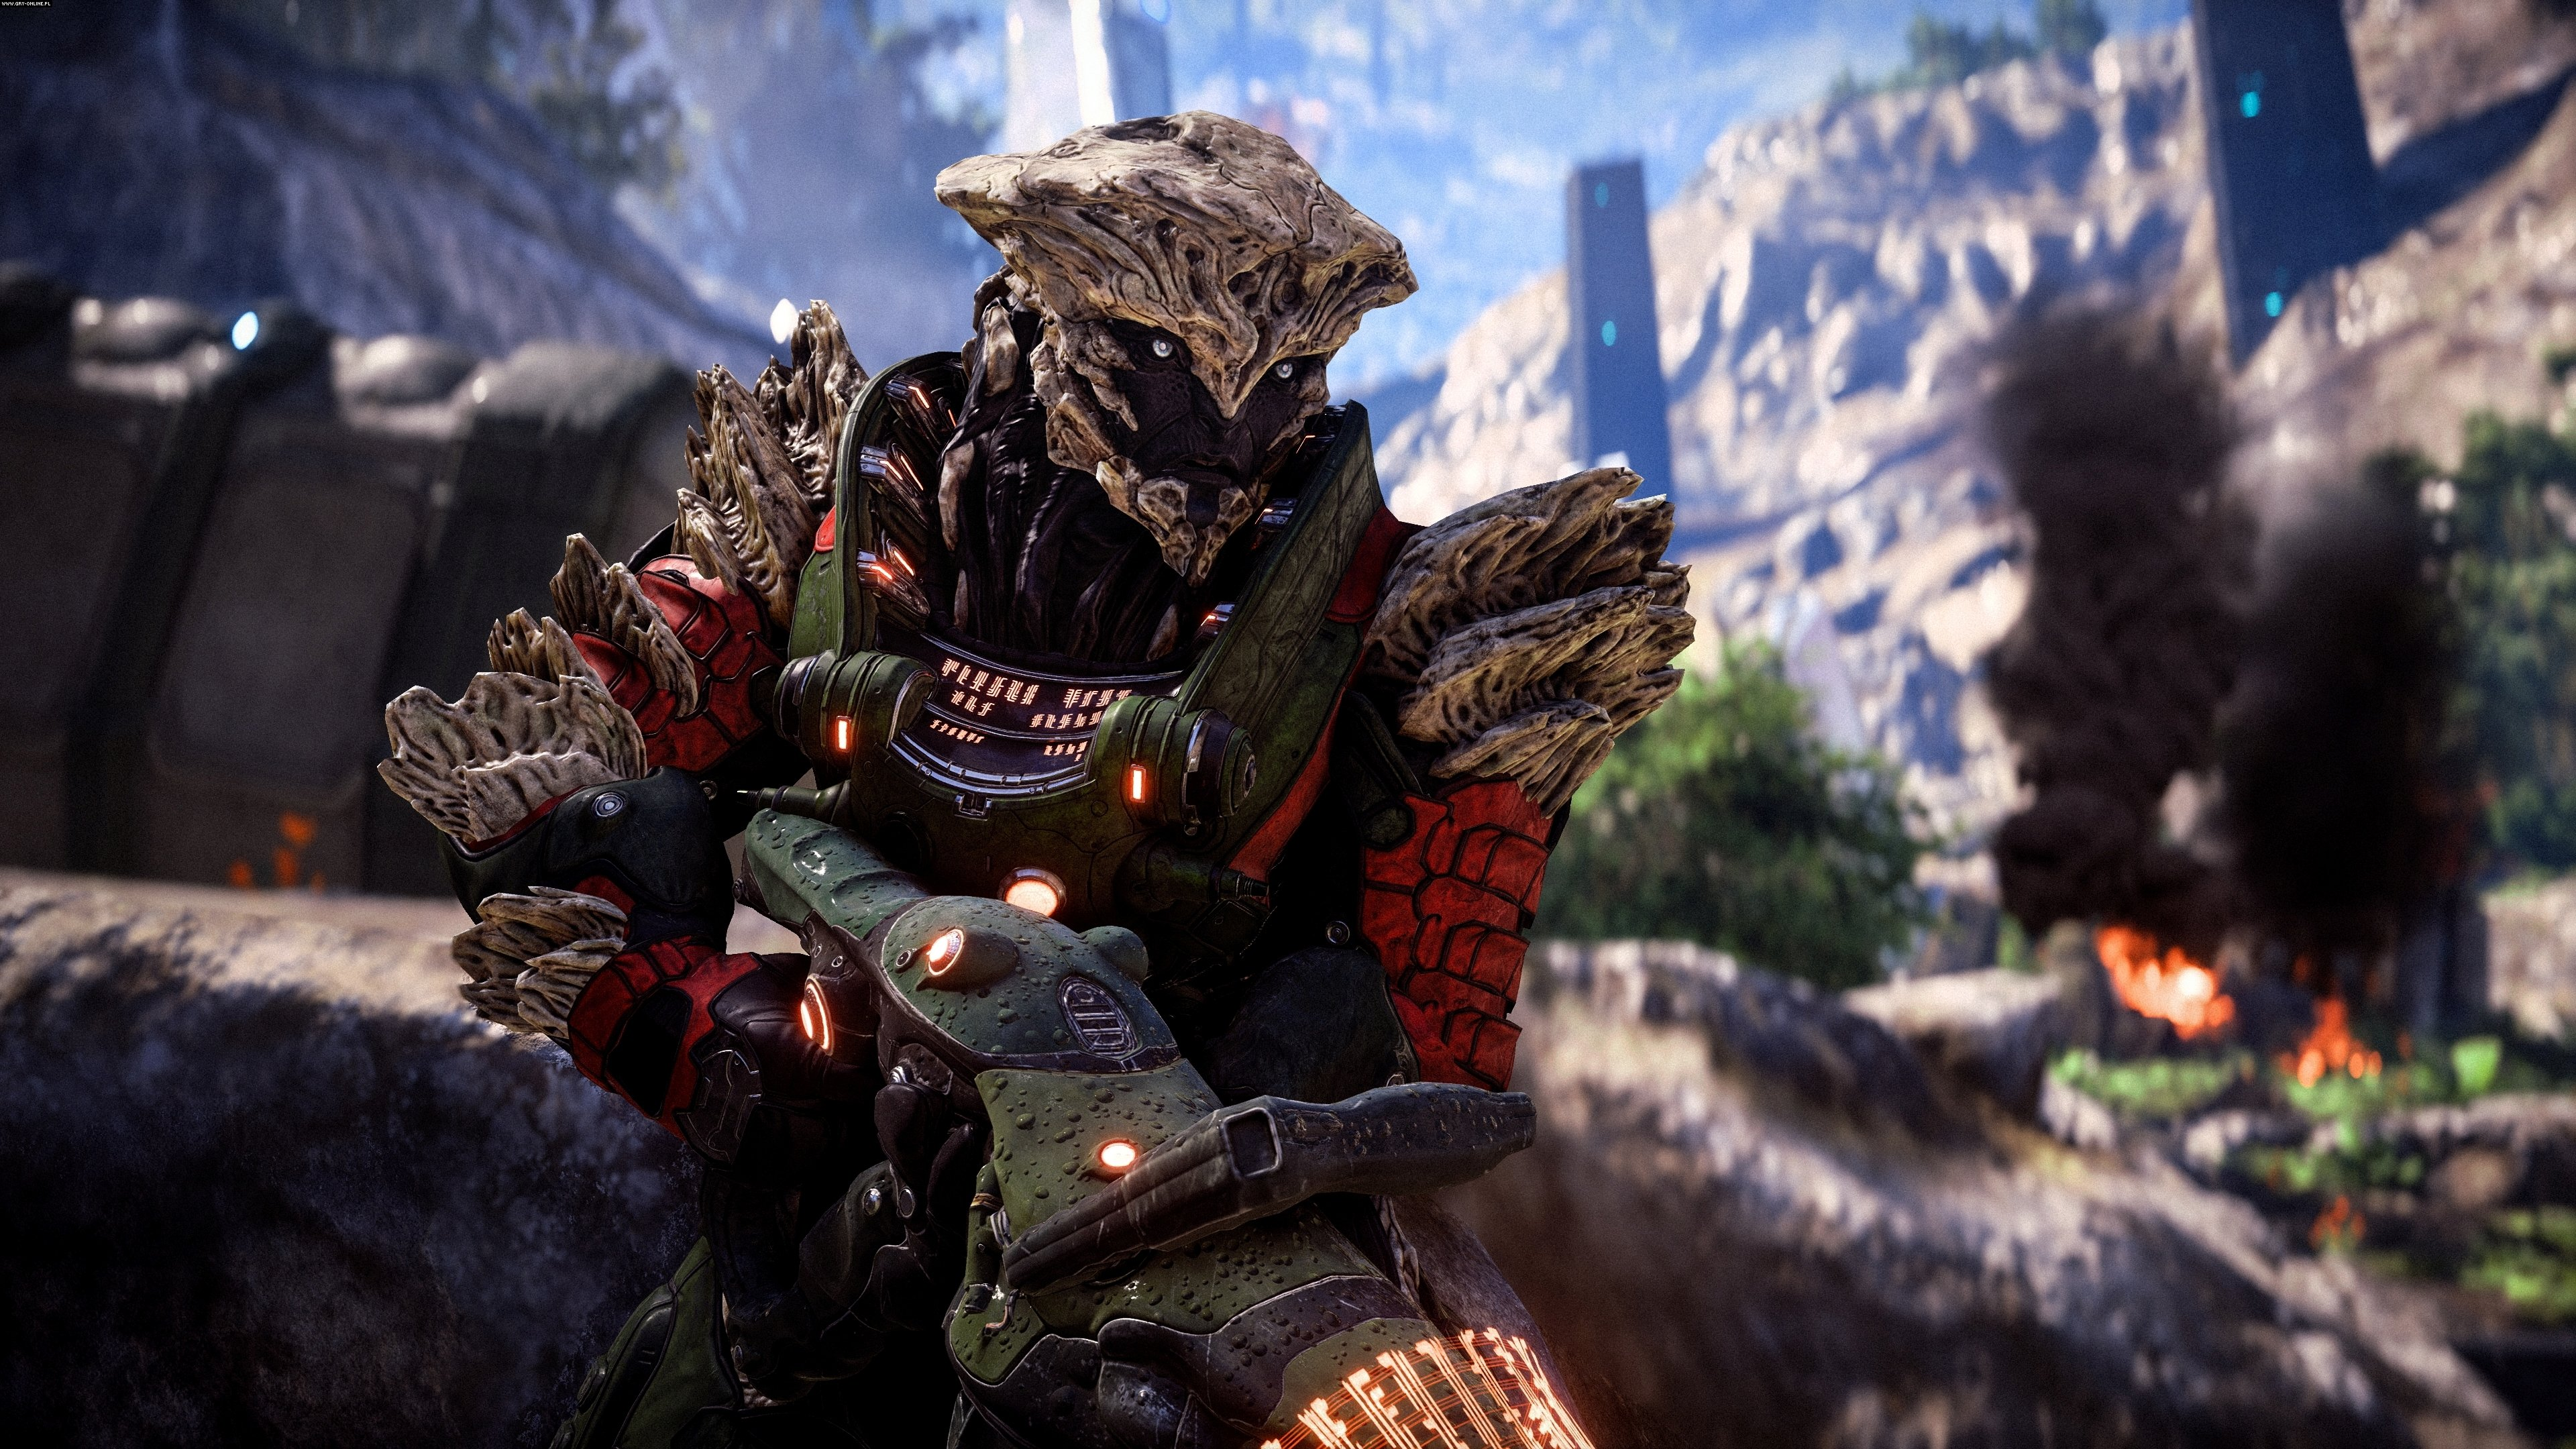 Mass Effect: Andromeda PC, PS4 Games Image 6/140, BioWare Corporation, Electronic Arts Inc.